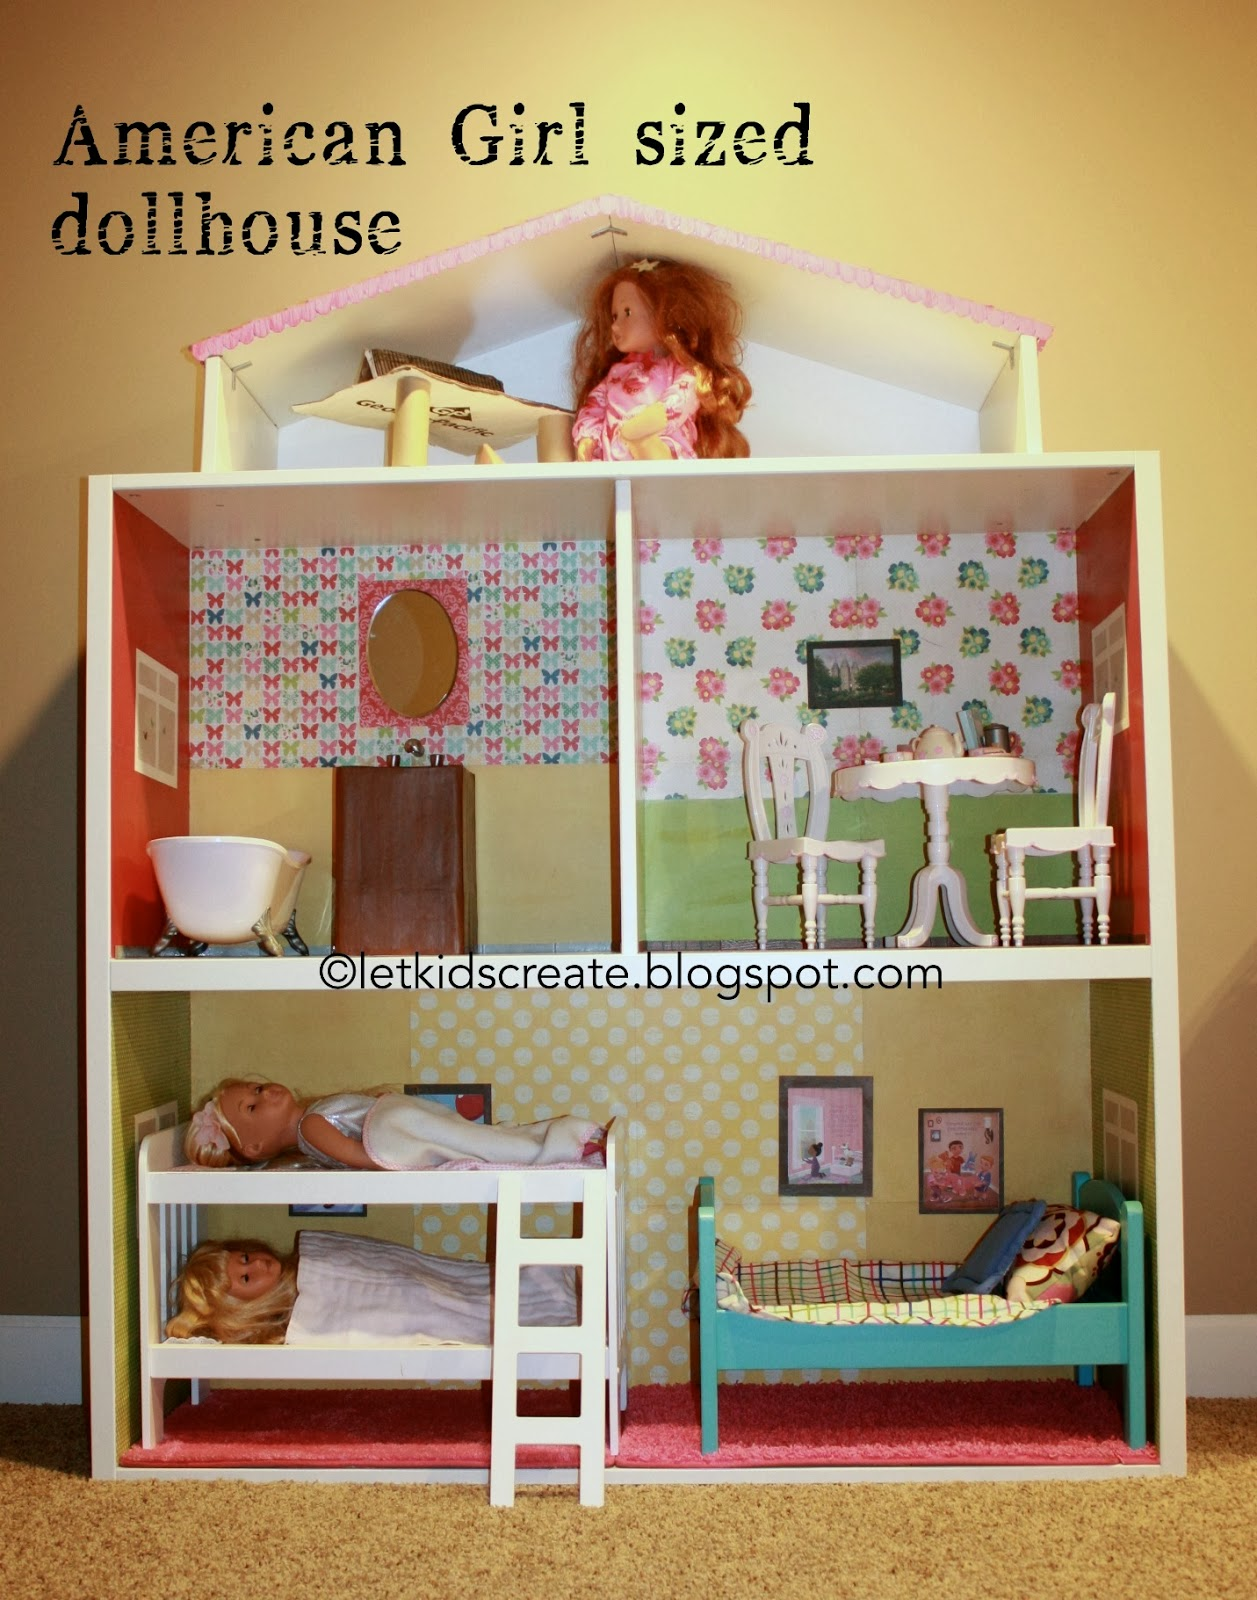 American Girl Doll Videos Of Rooms